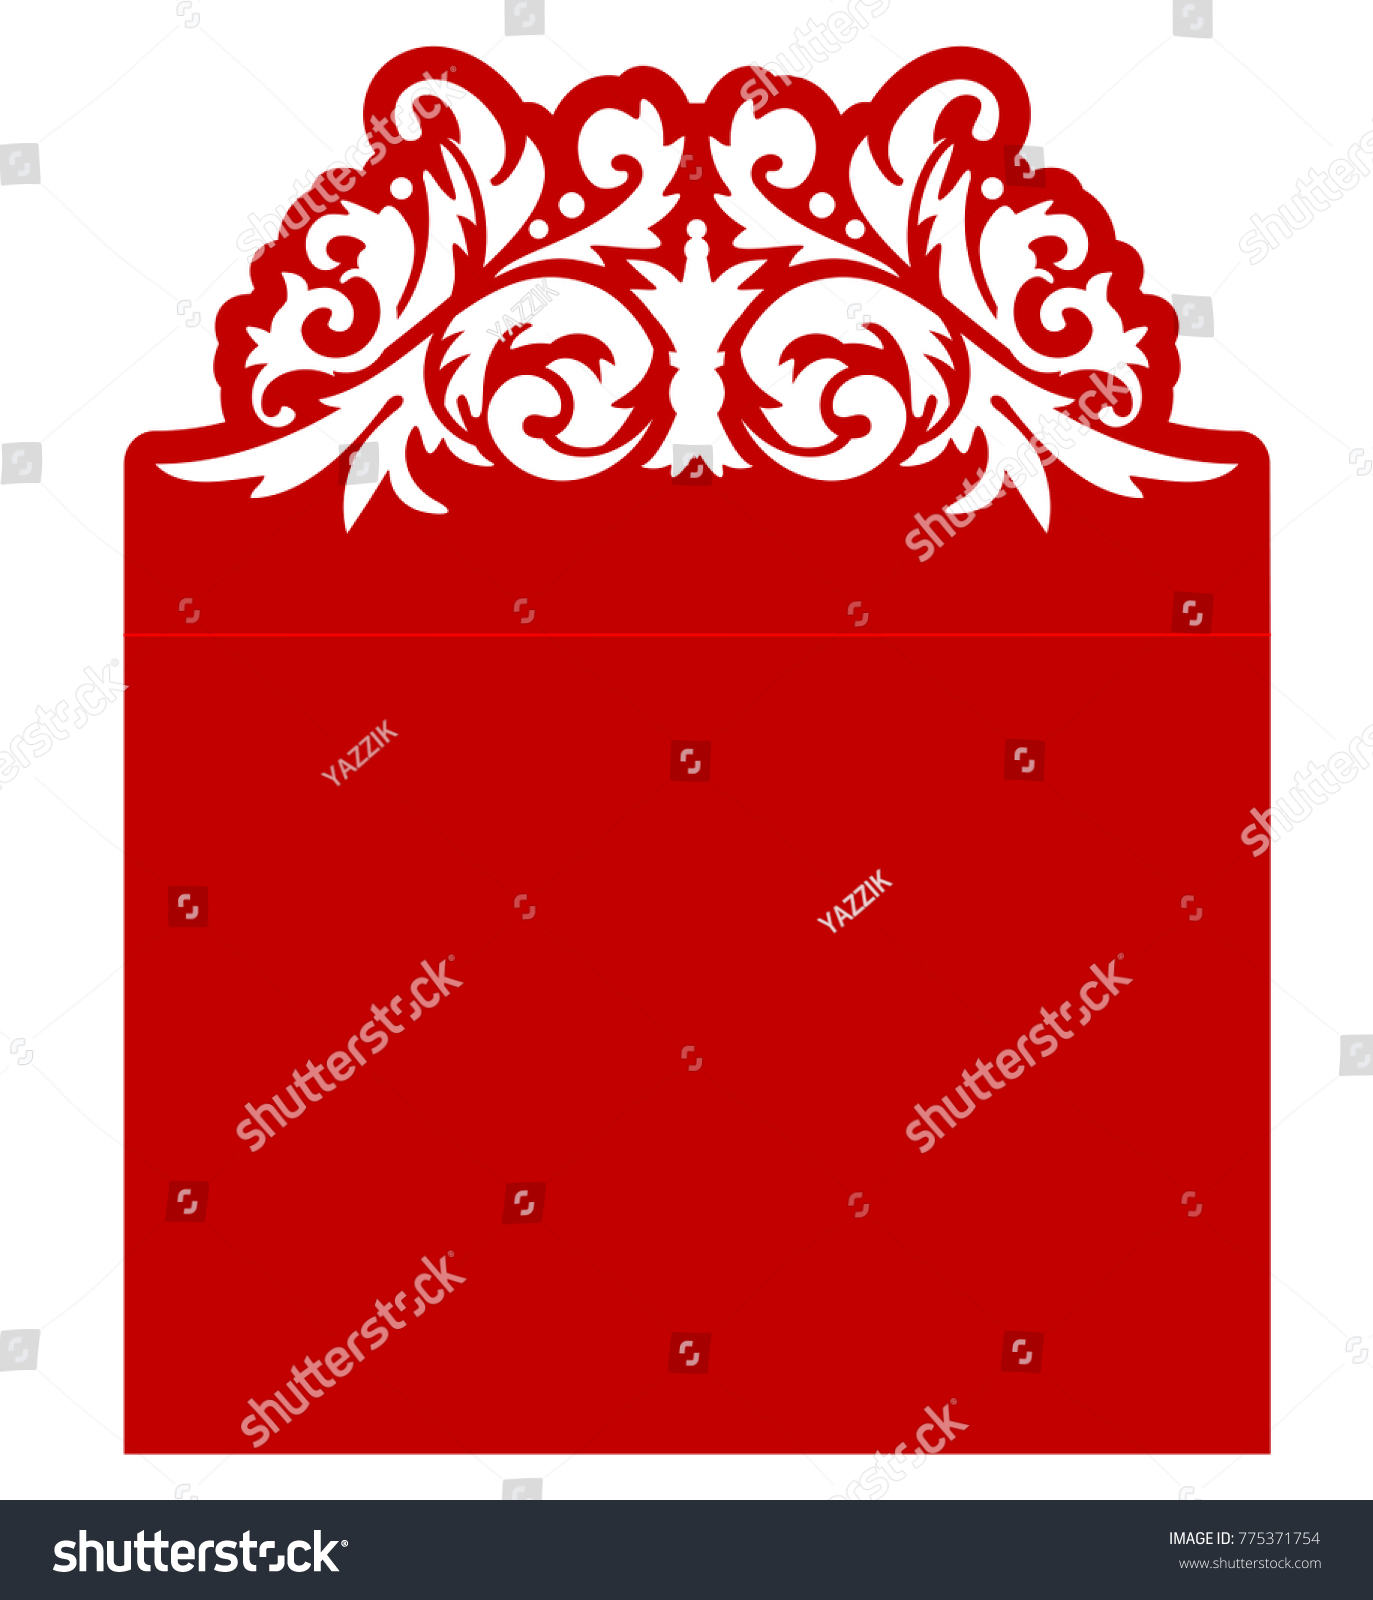 Laser Cut Flower Template Envelope Vector Stock Vector (Royalty Free ...